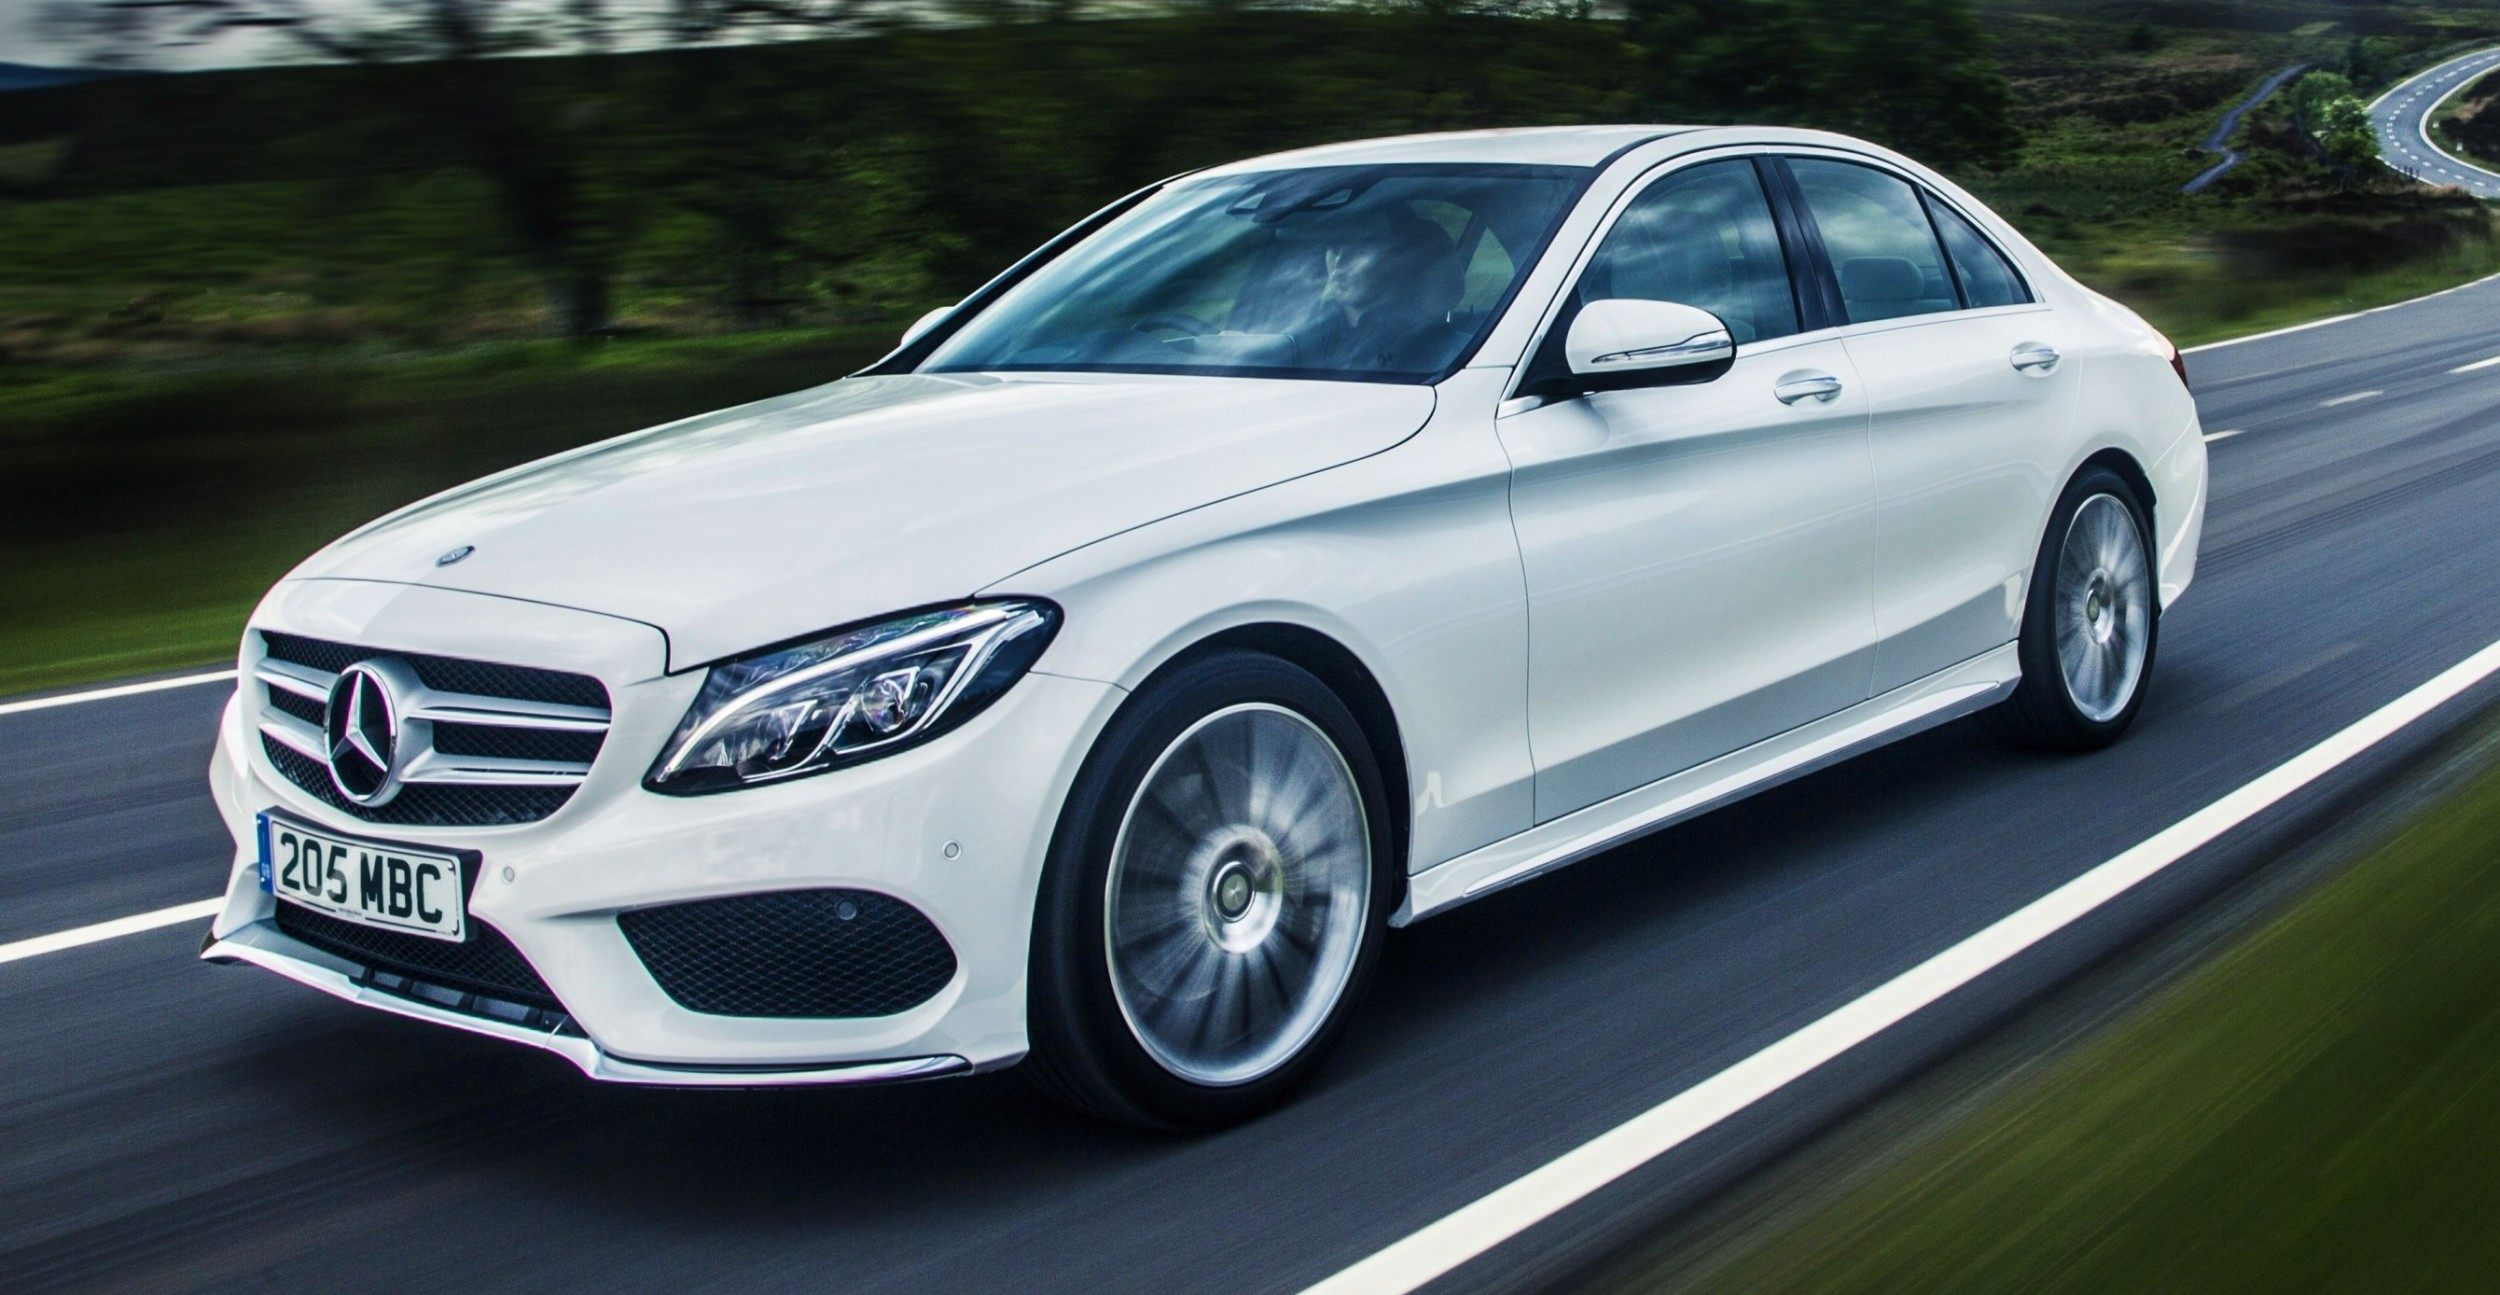 2015 mercedes-benz c-class in 40 new photos from london - c300 and